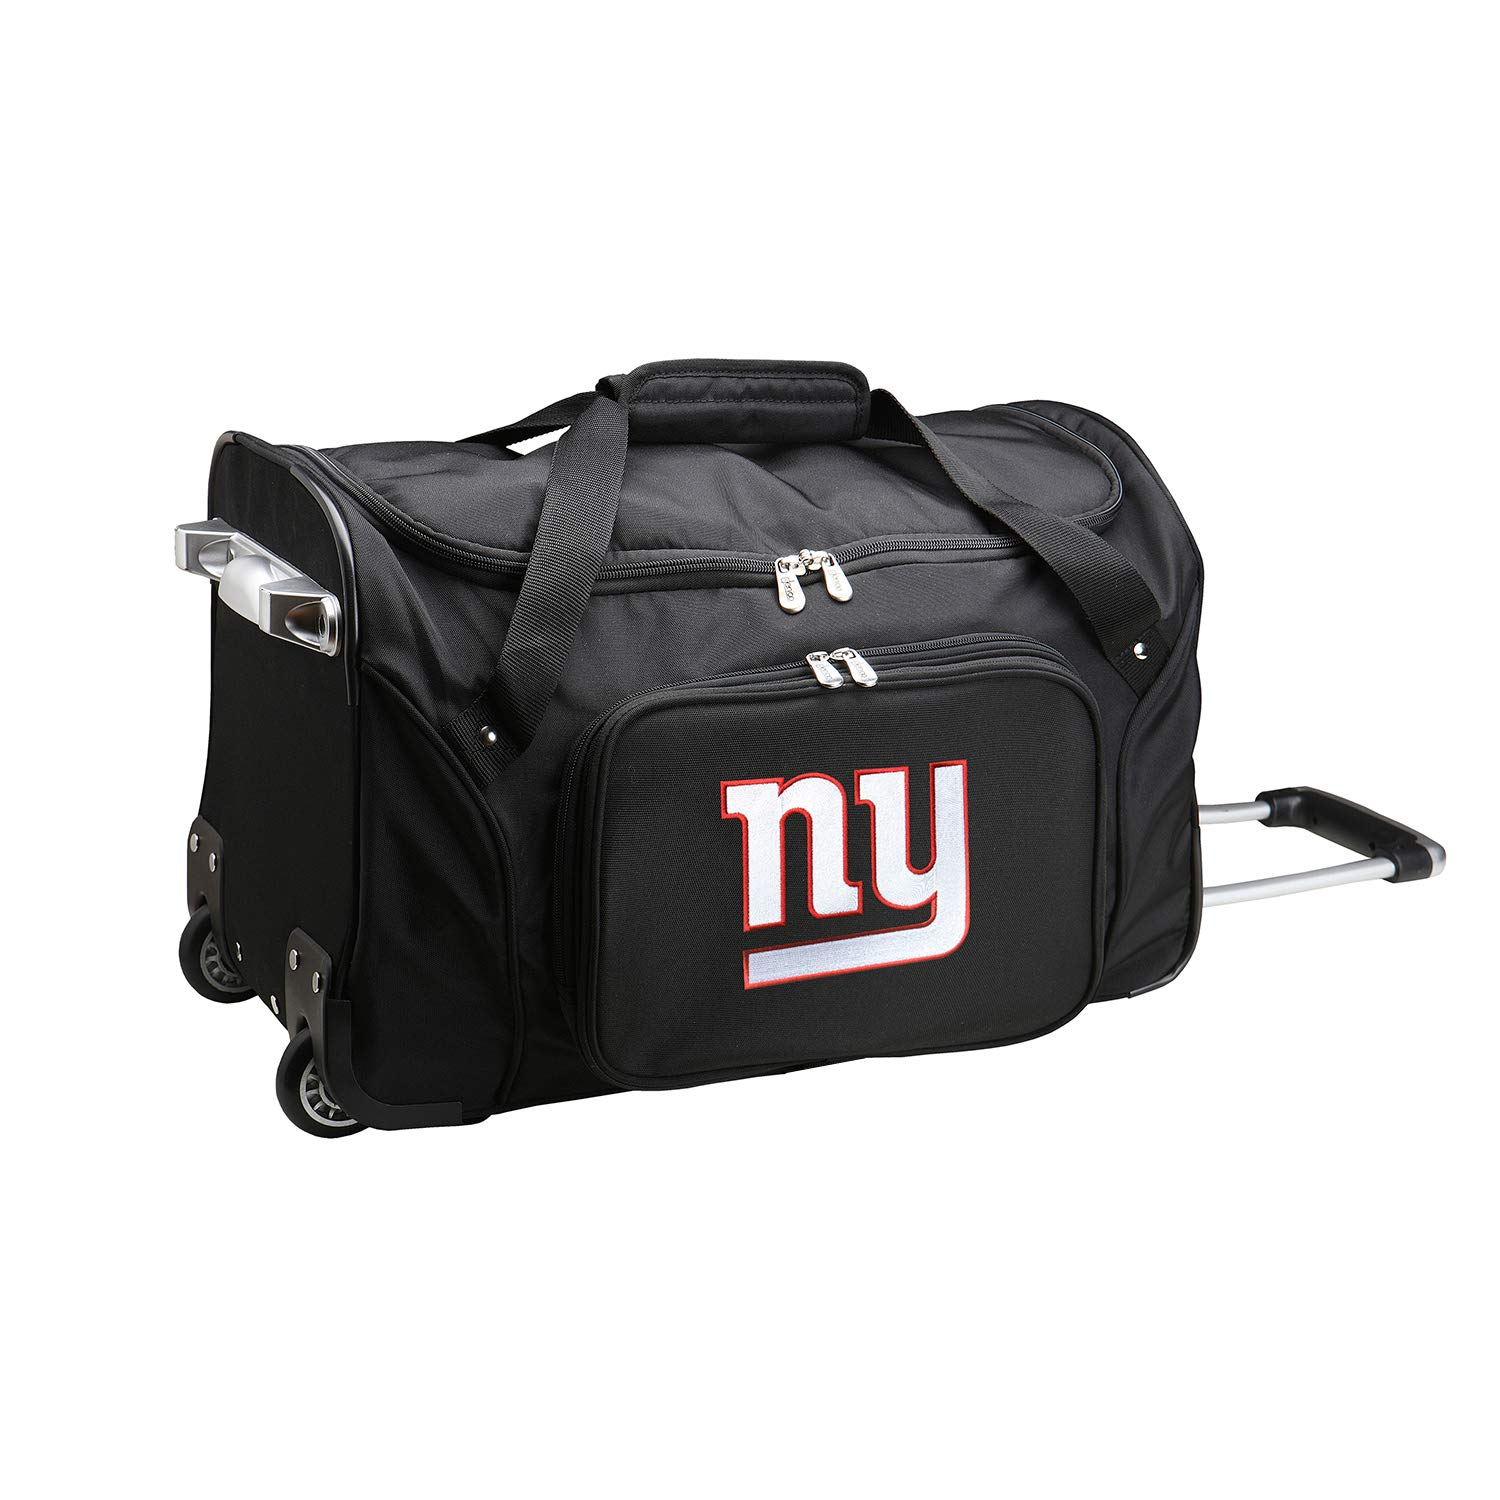 NFL New York Giants Wheeled Duffle Bag, 22 x 12 x 5.5, Black by Denco